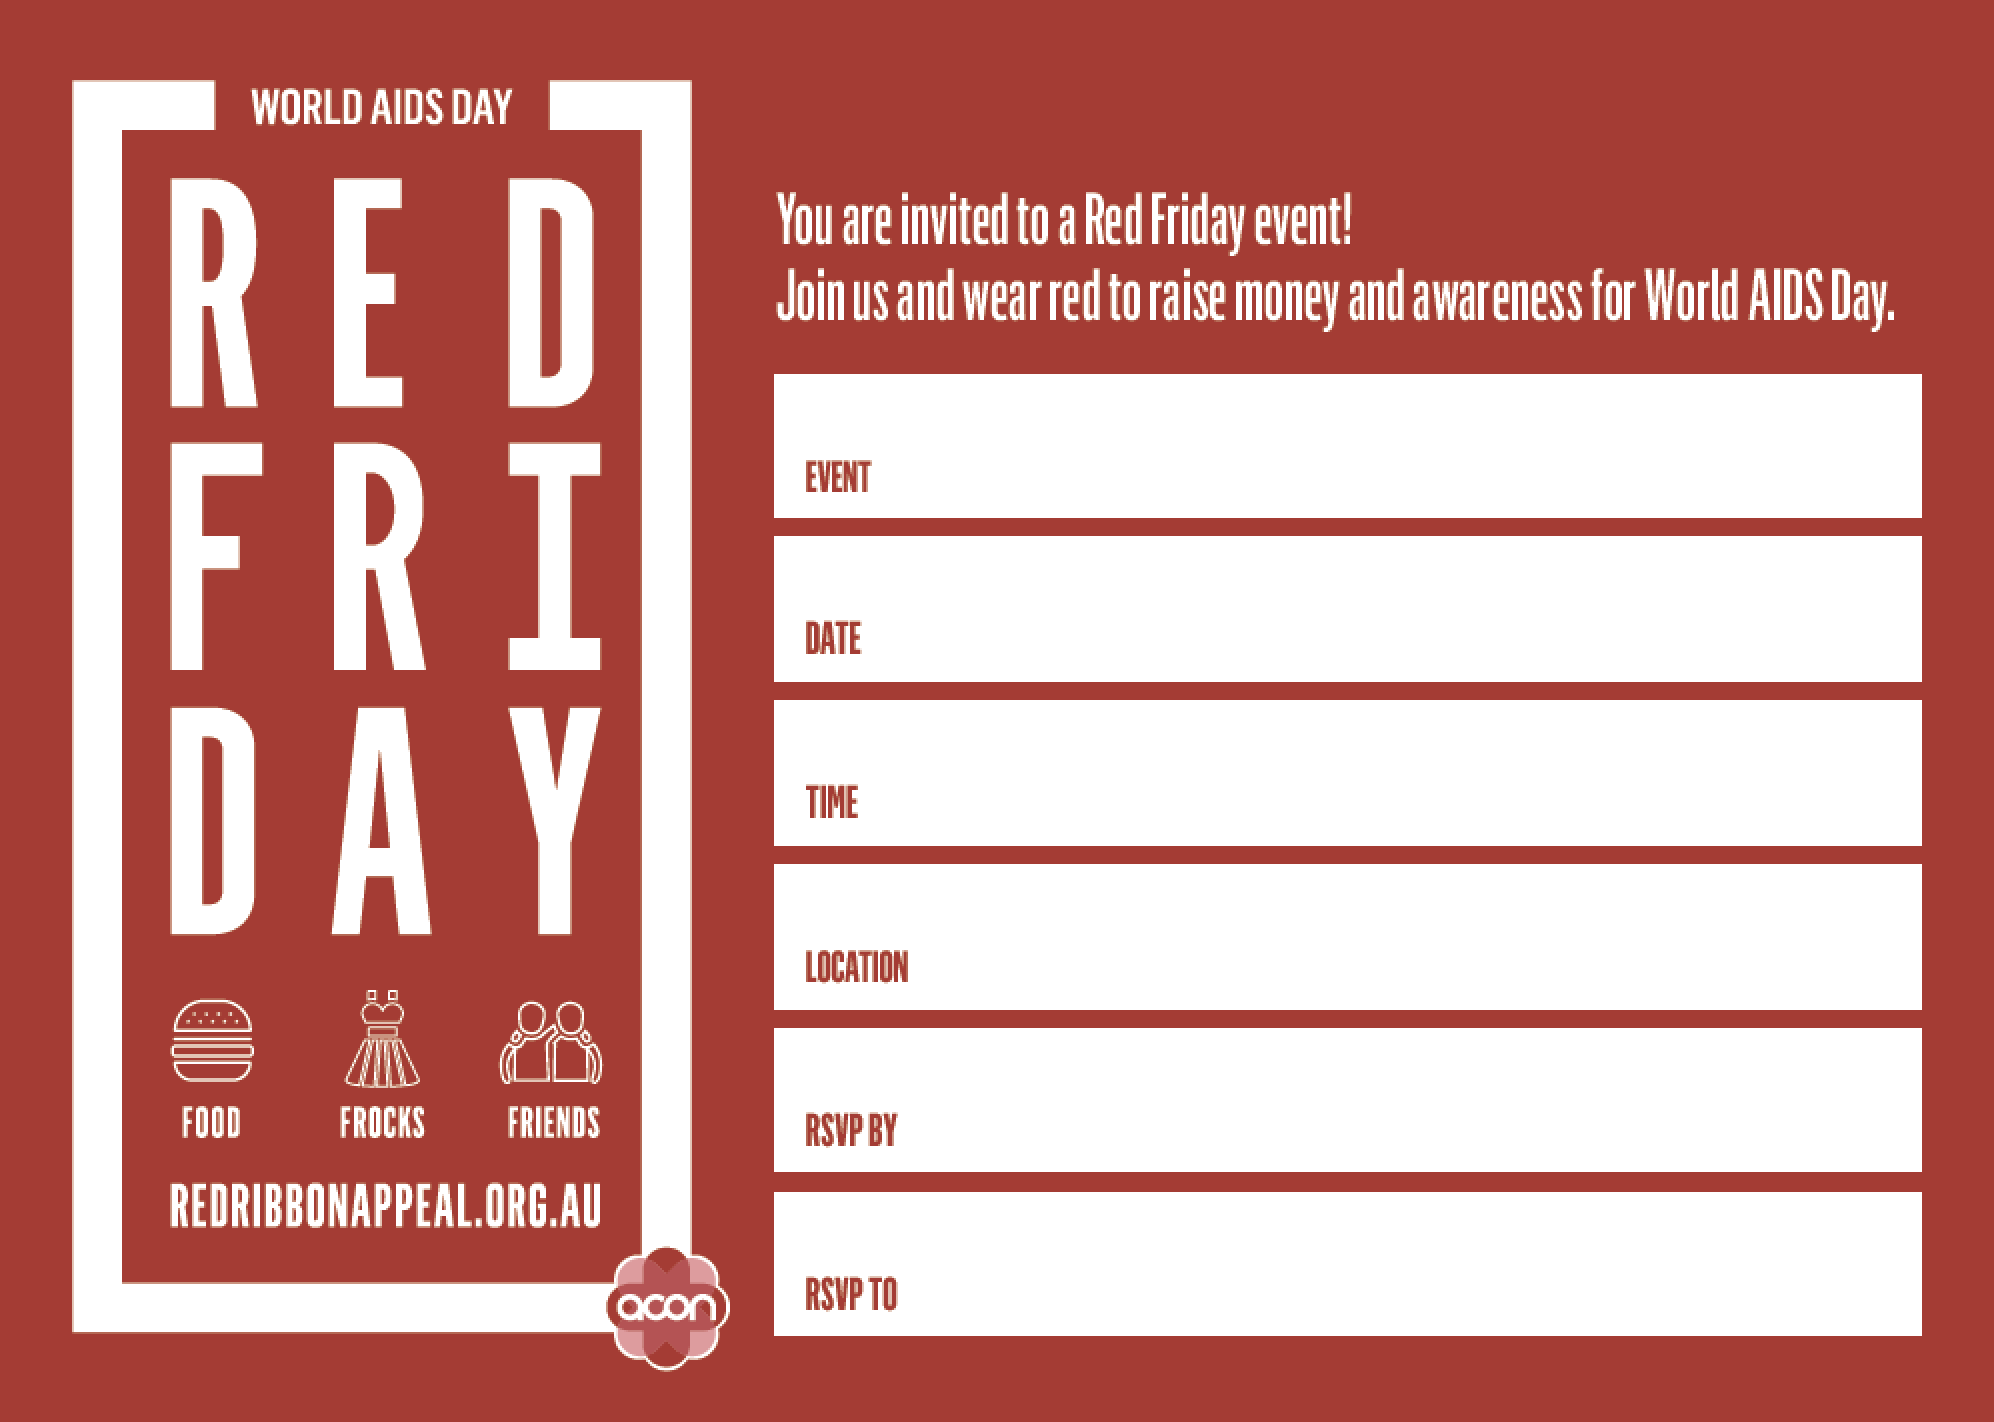 Red Friday - Invitation (PDF)